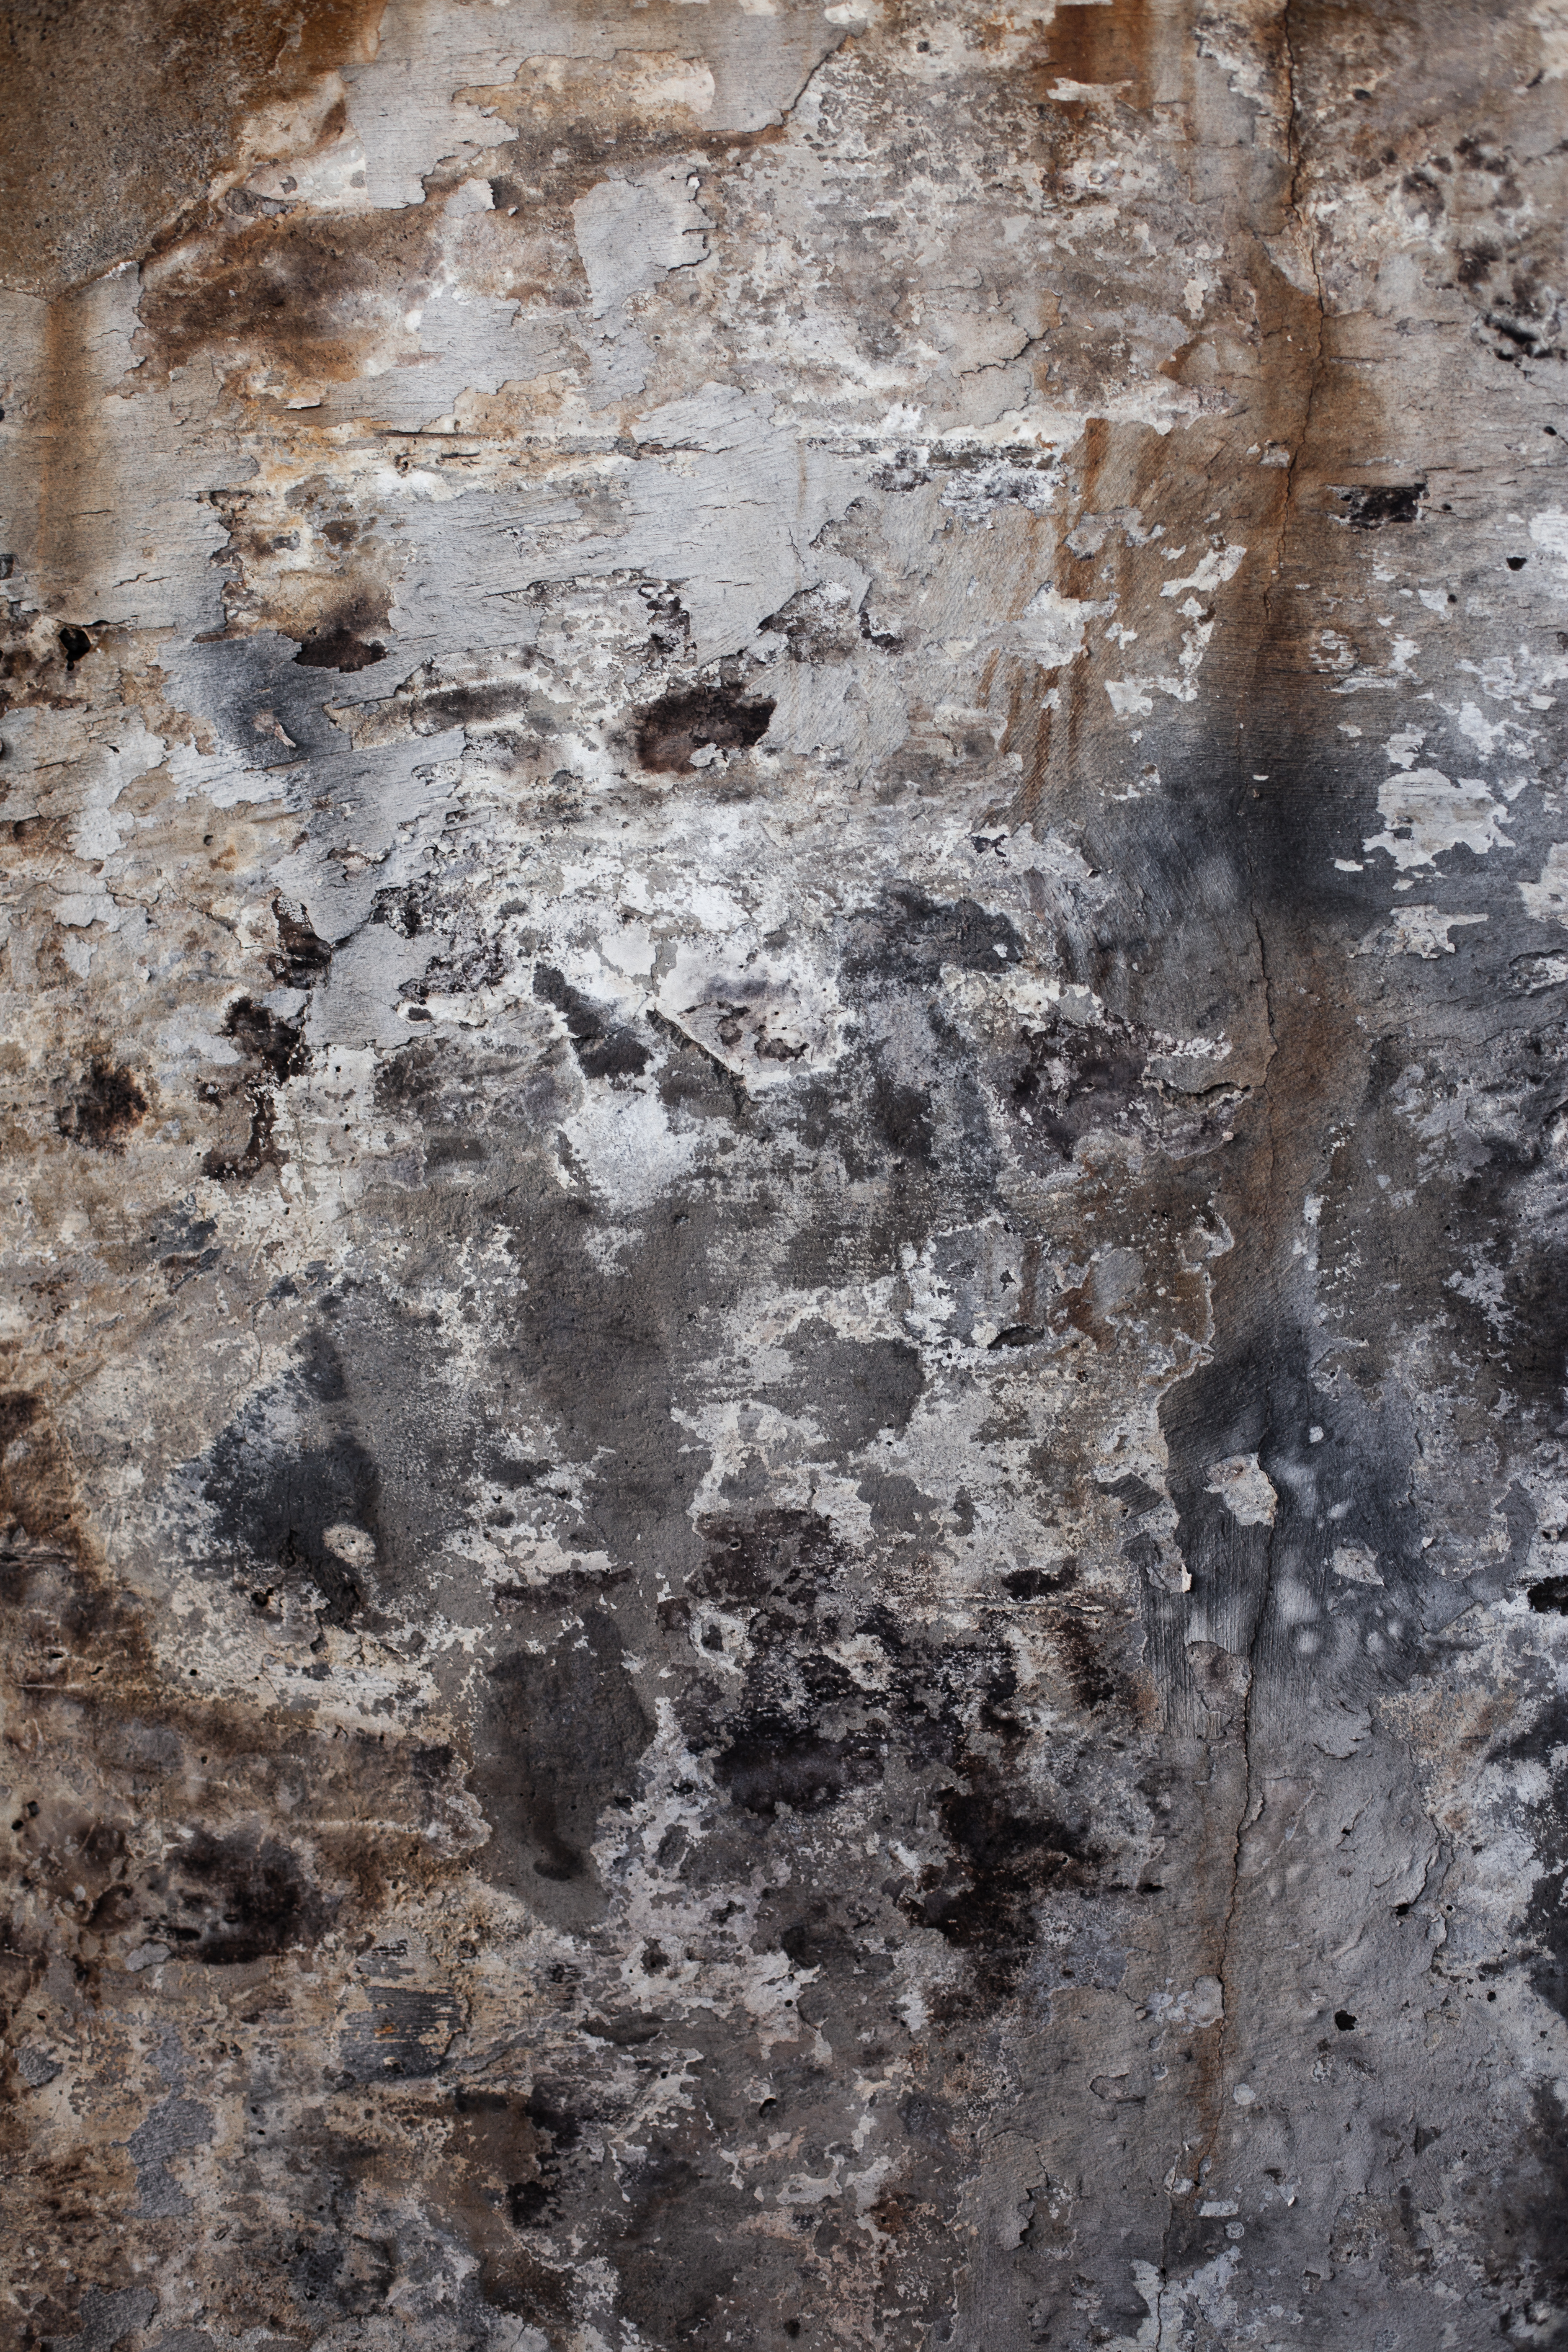 Rotten Grunge Surface, Grungy, Wall, Vintage, Texture, HQ Photo